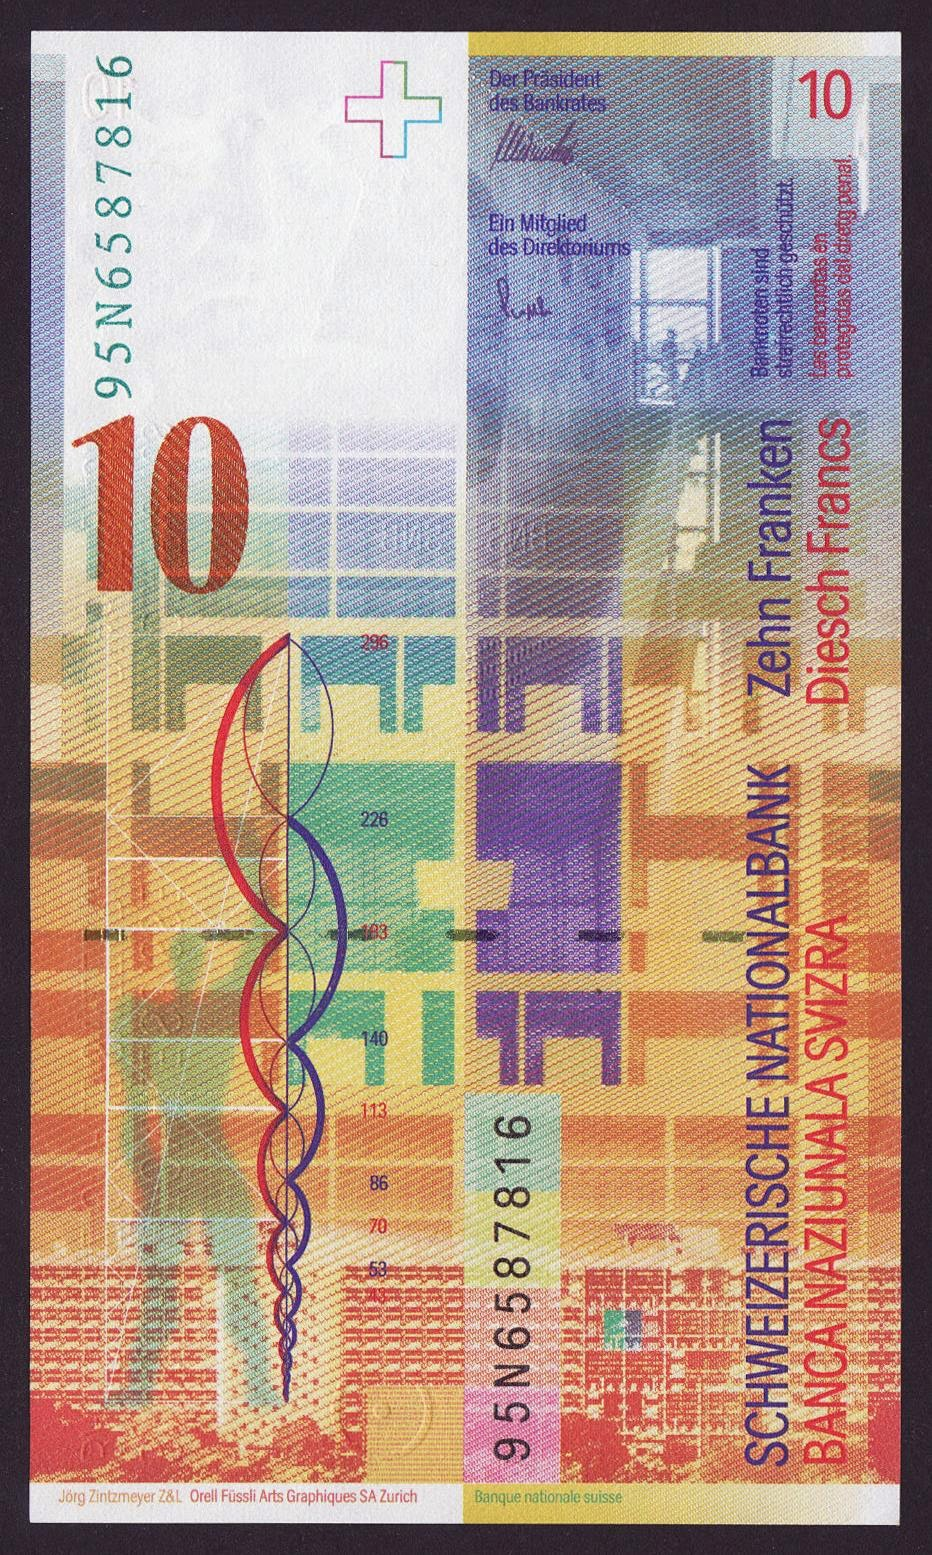 Switzerland Currency 10 Swiss Francs note